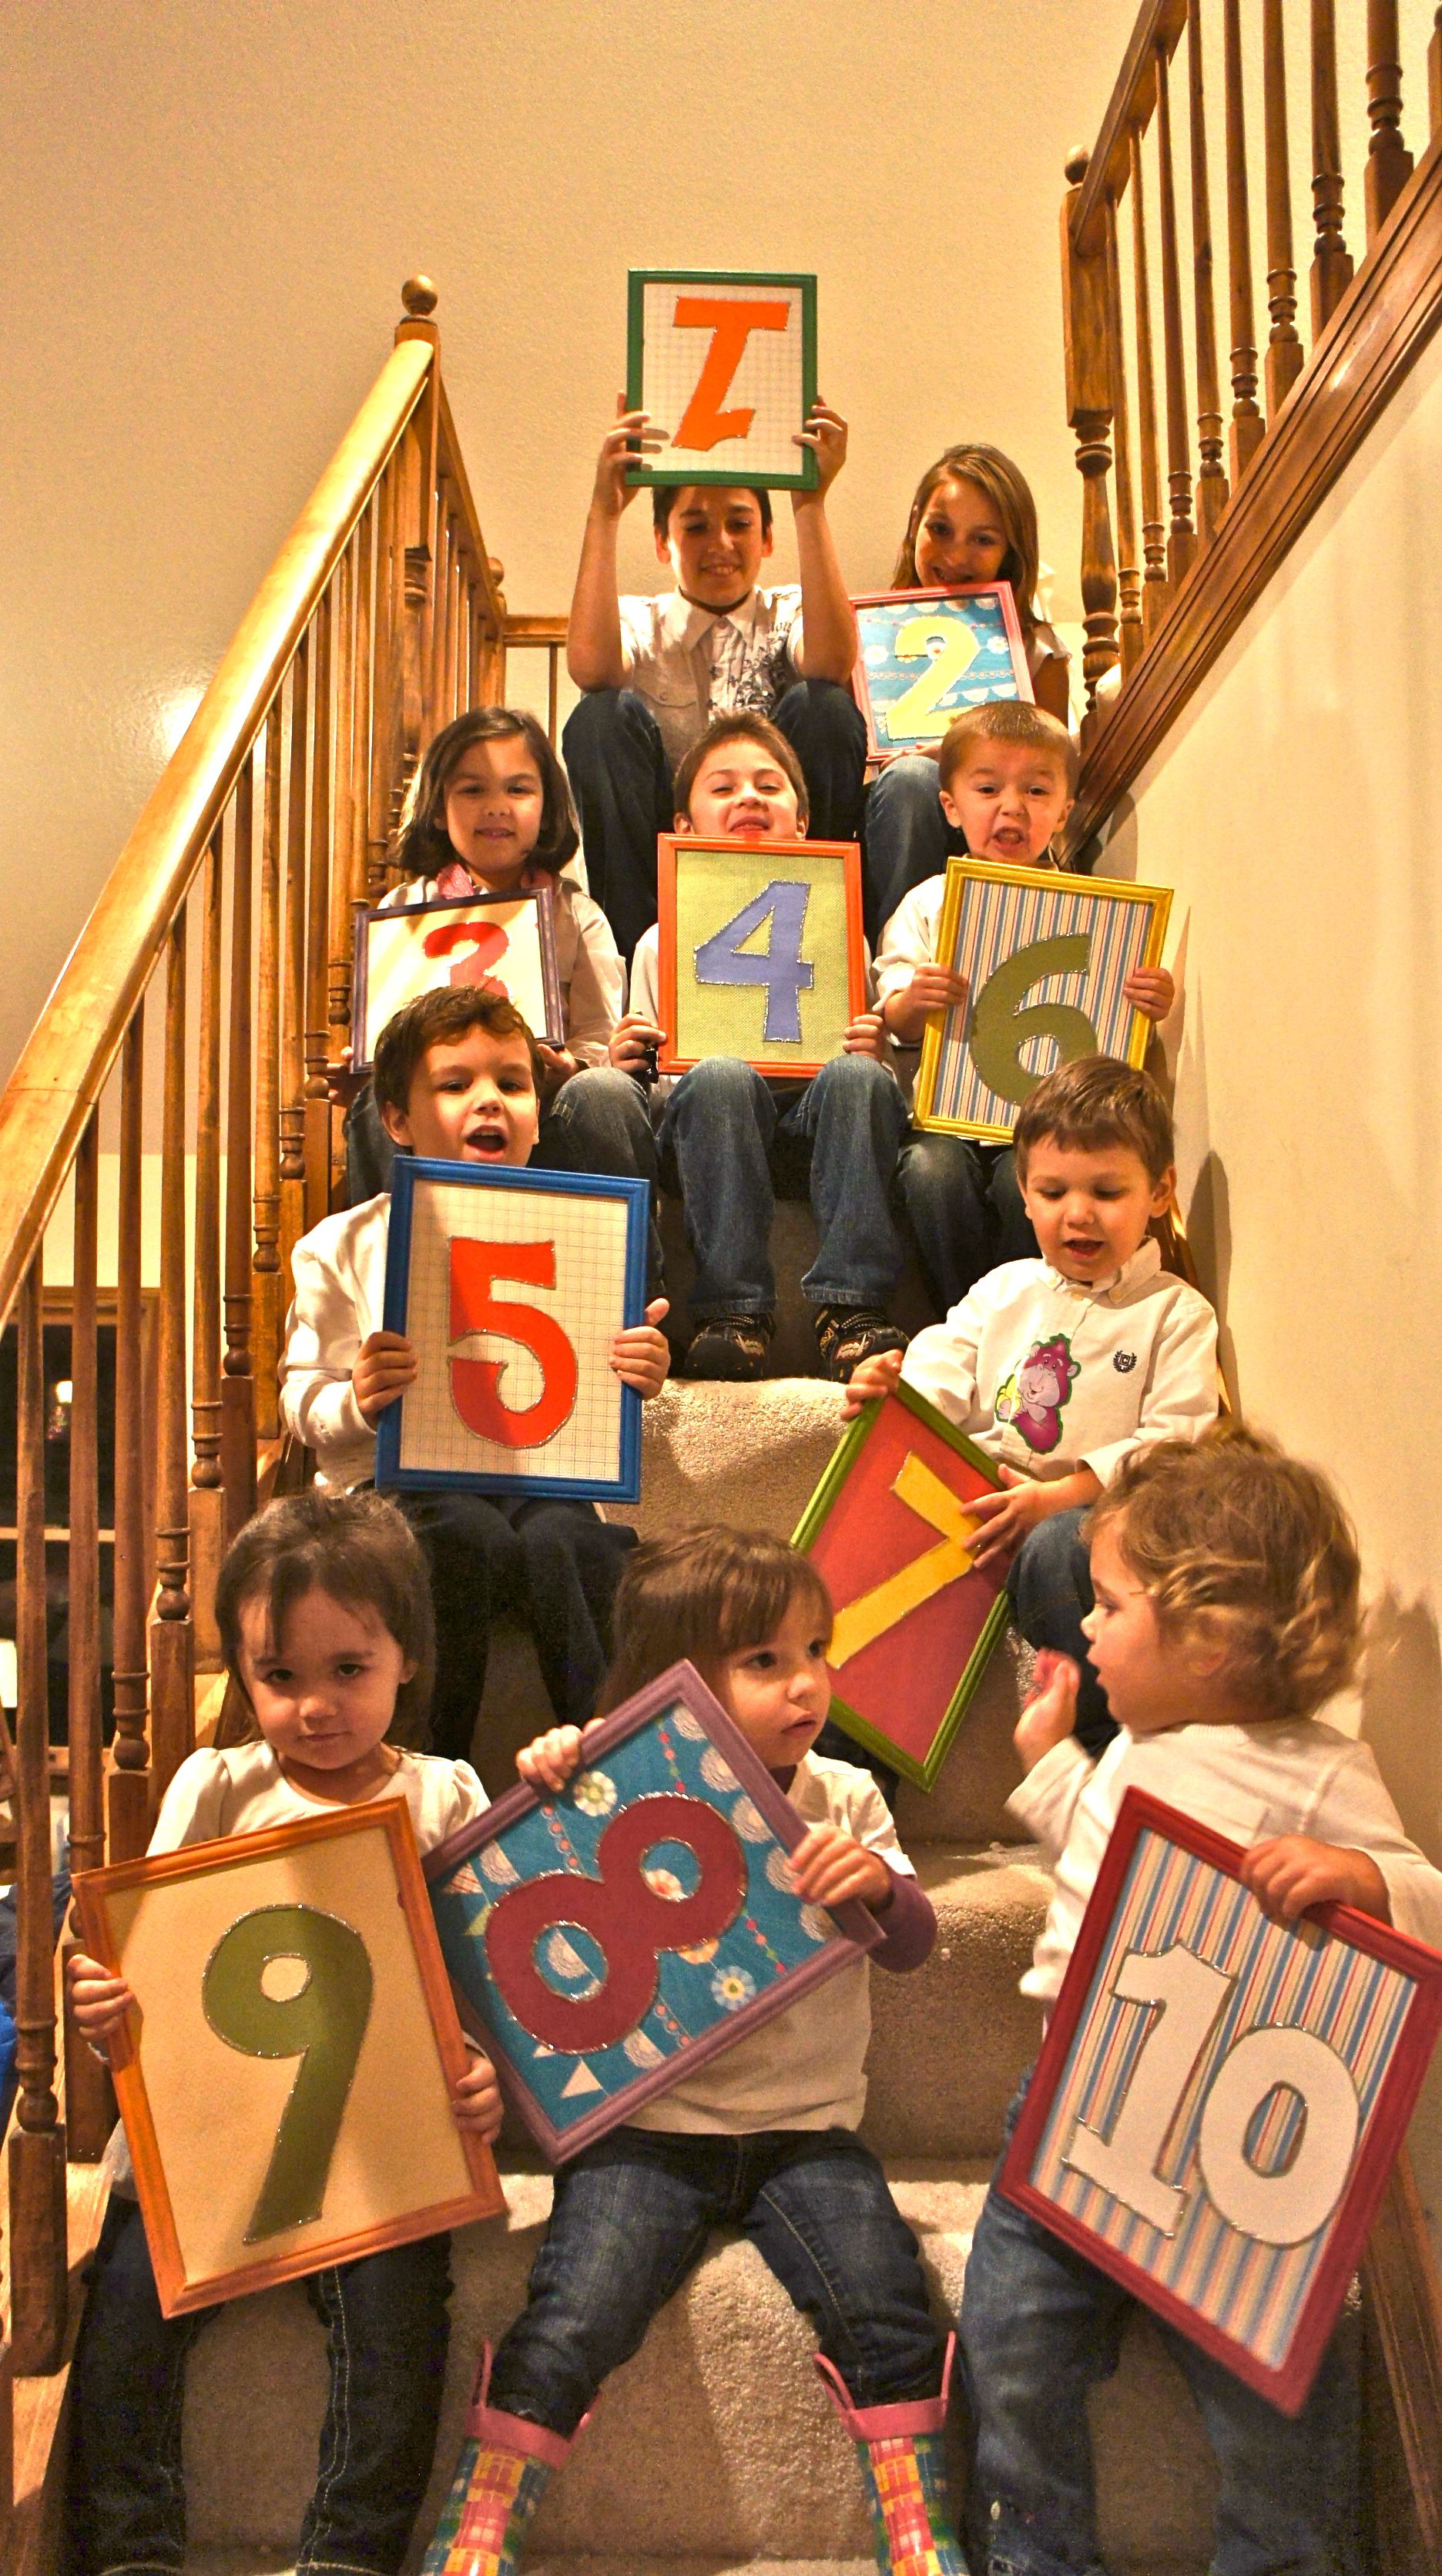 For grandparents... darling picture of all the grandkids holding their # in birth order...CUTE!